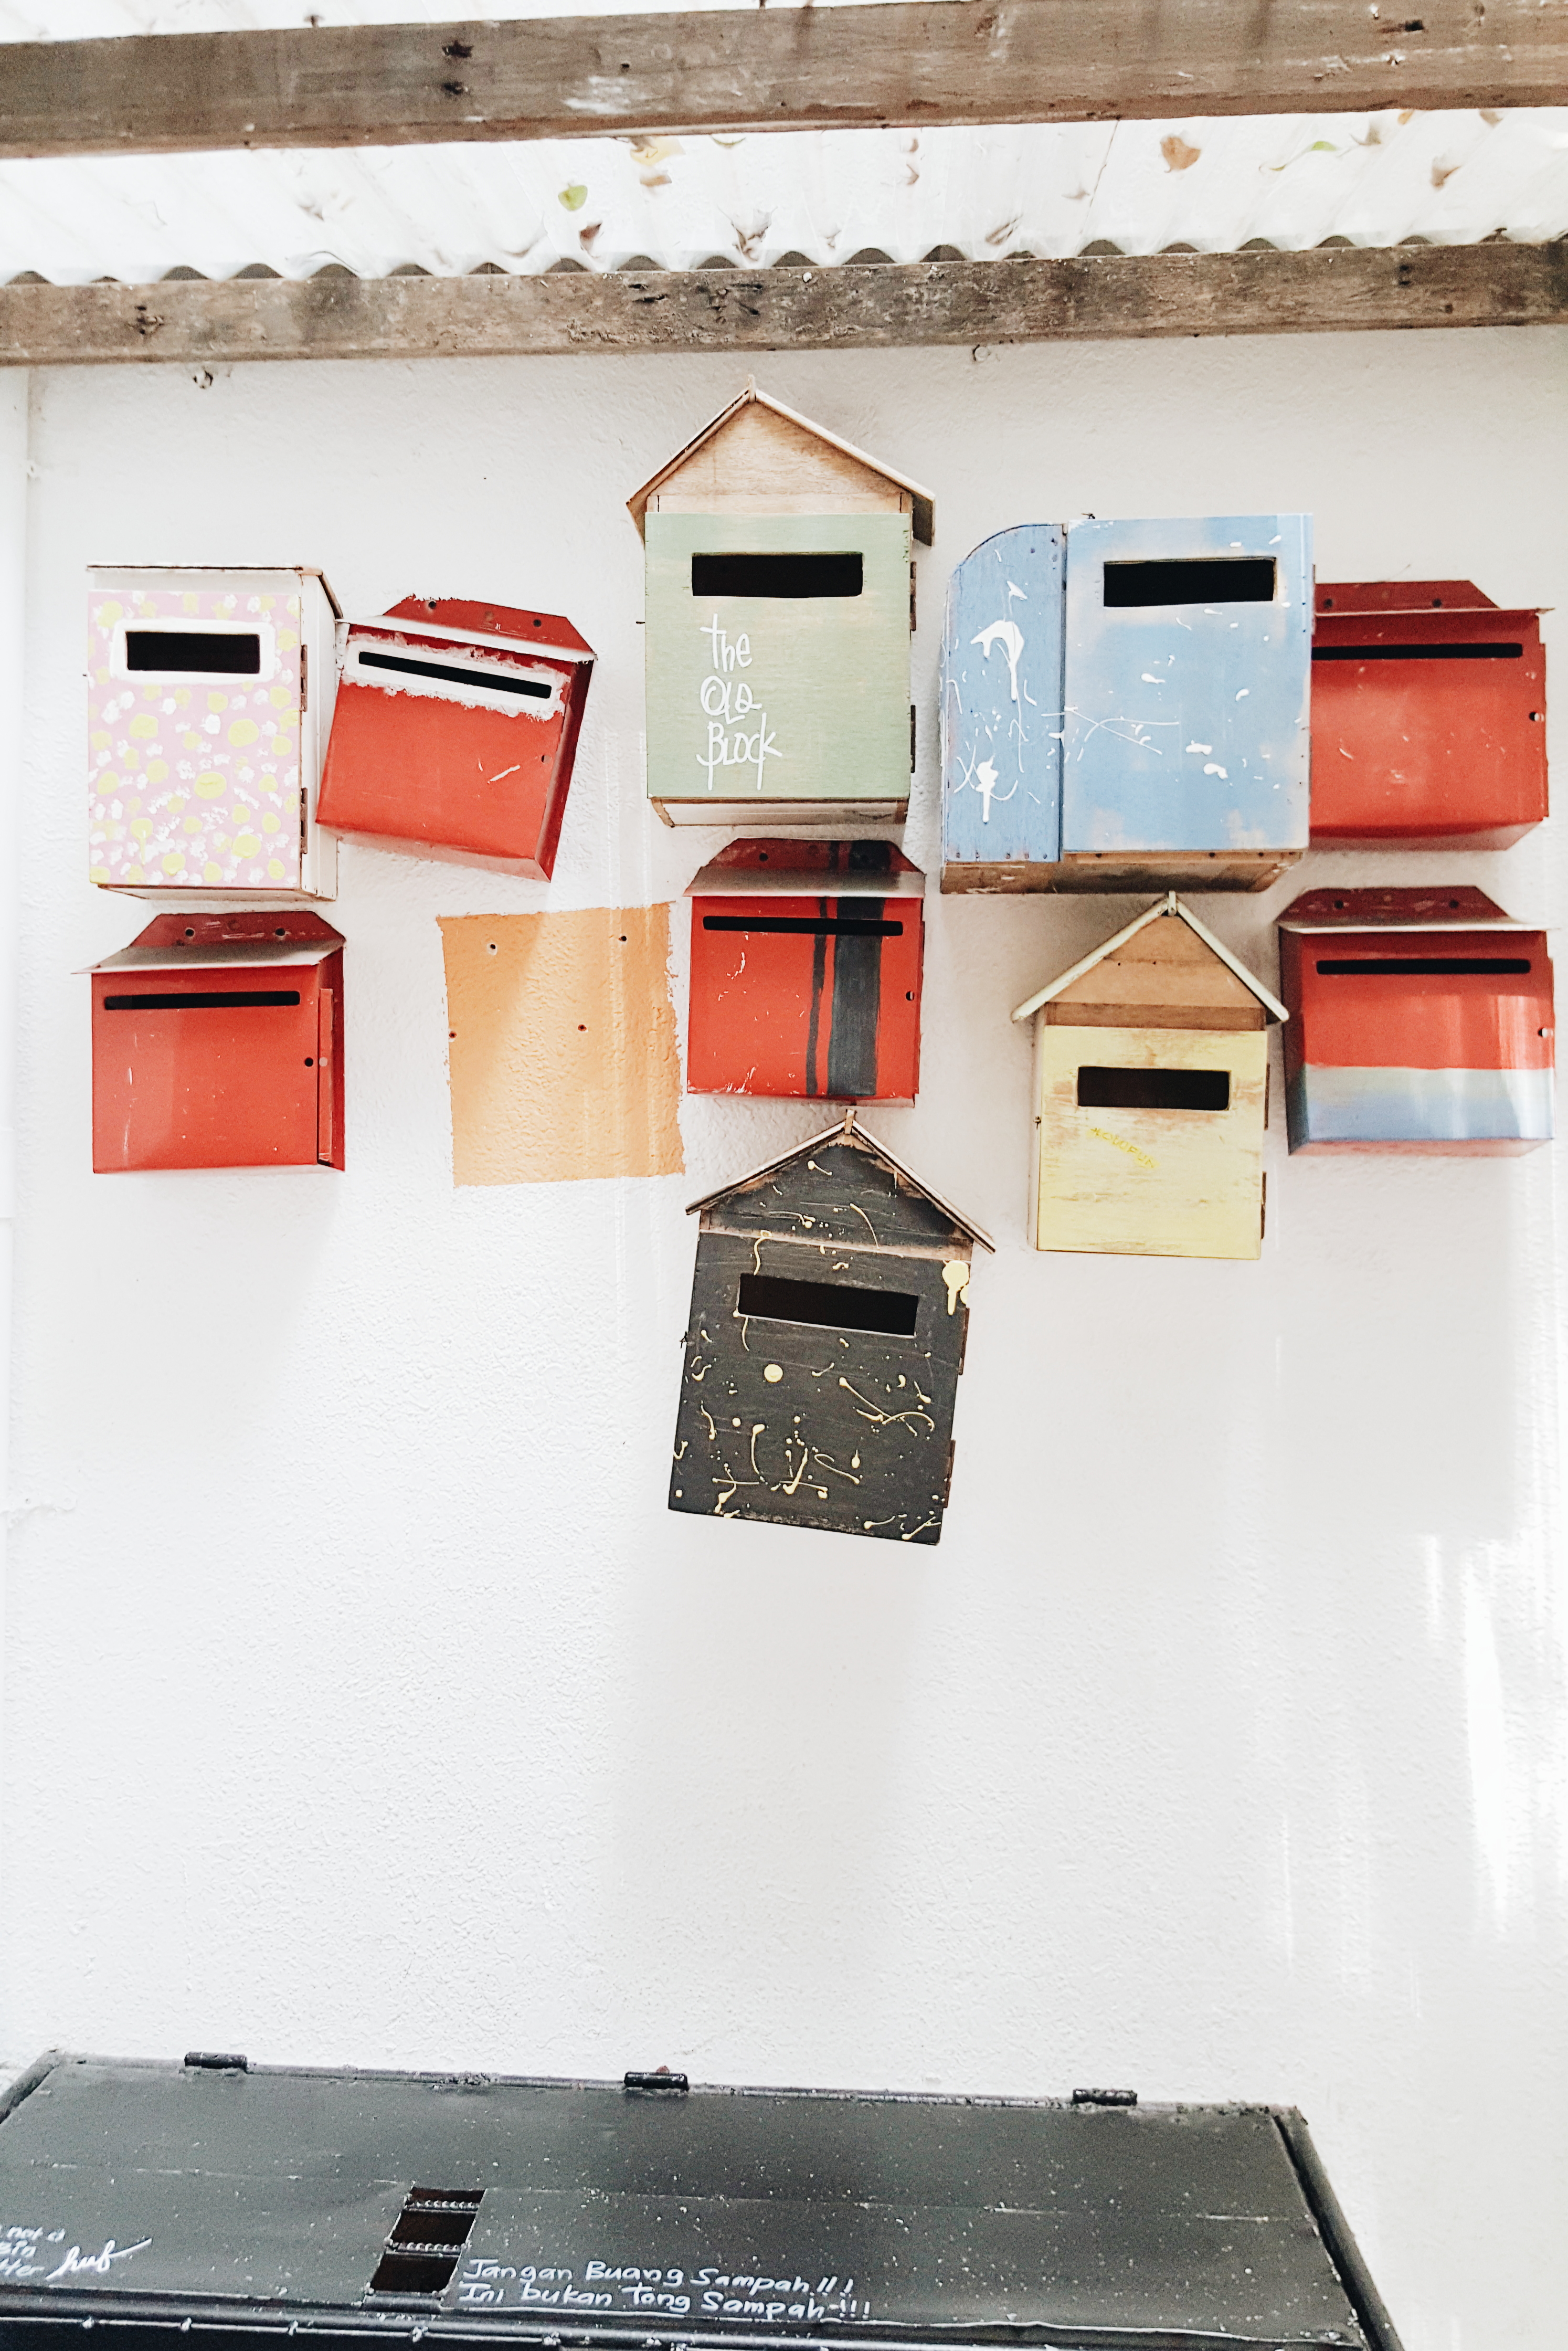 Daisybutter - Hong Kong Lifestyle and Fashion Blog: Ipoh Old Town letter boxes, five year plans